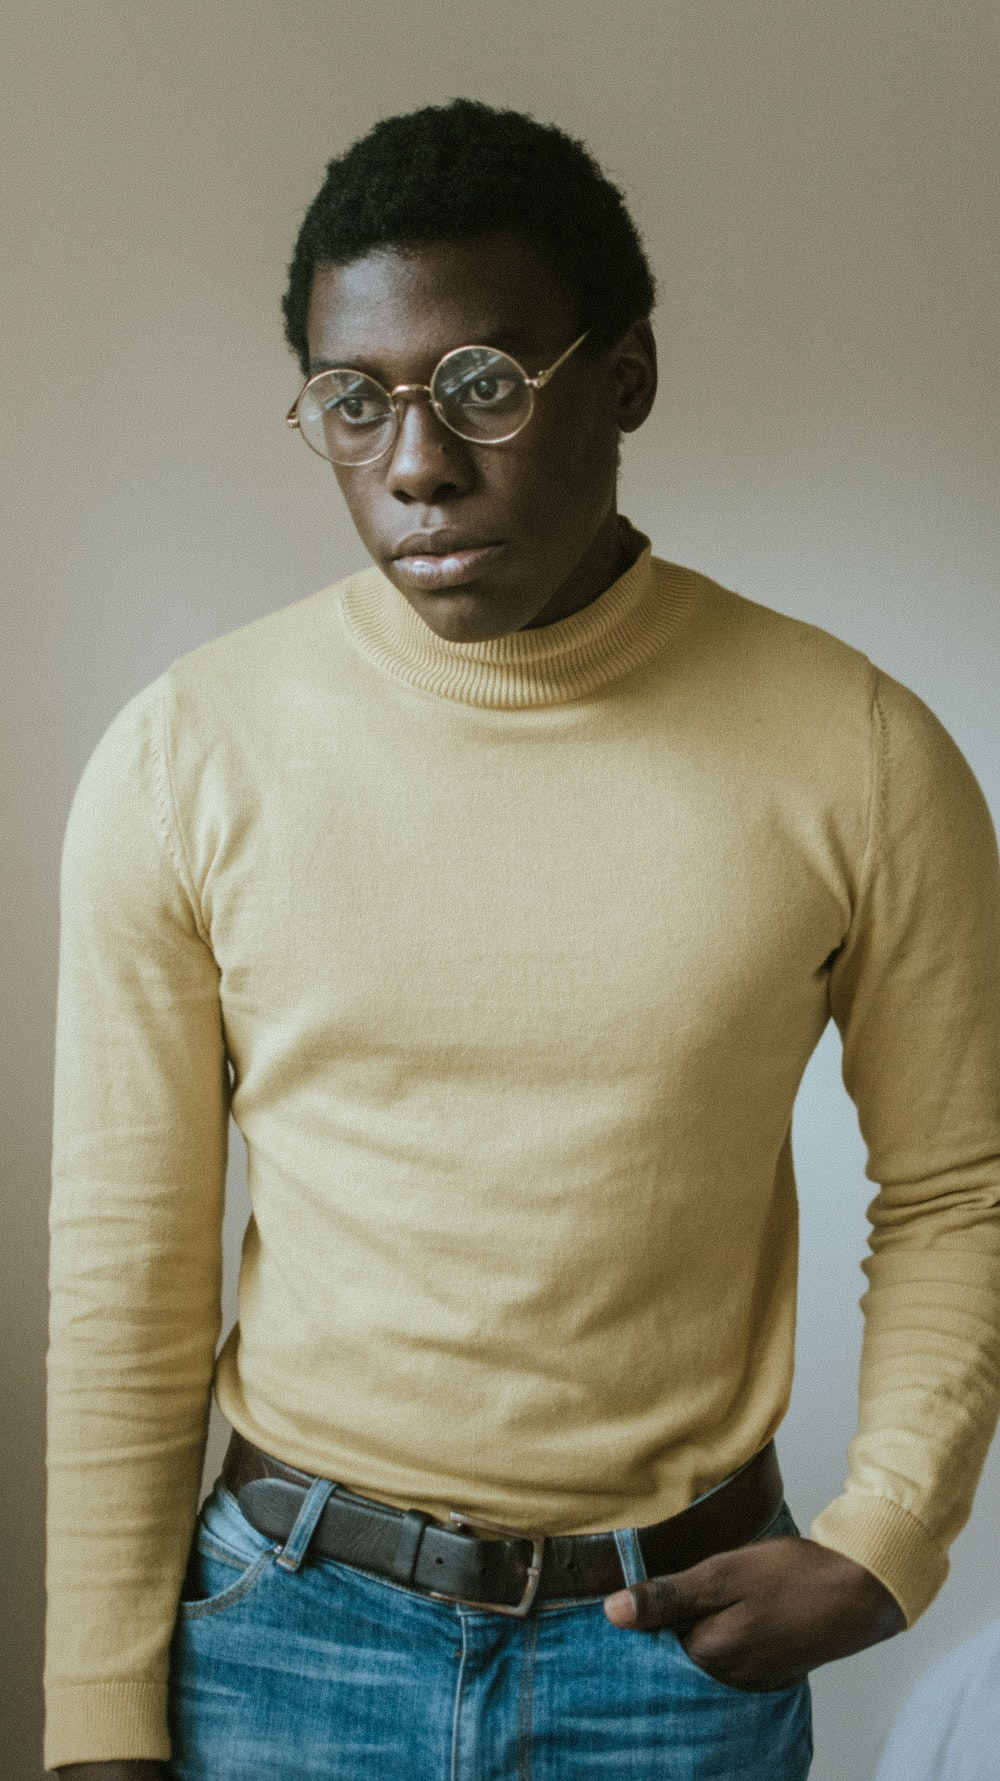 man wearing yellow sweater